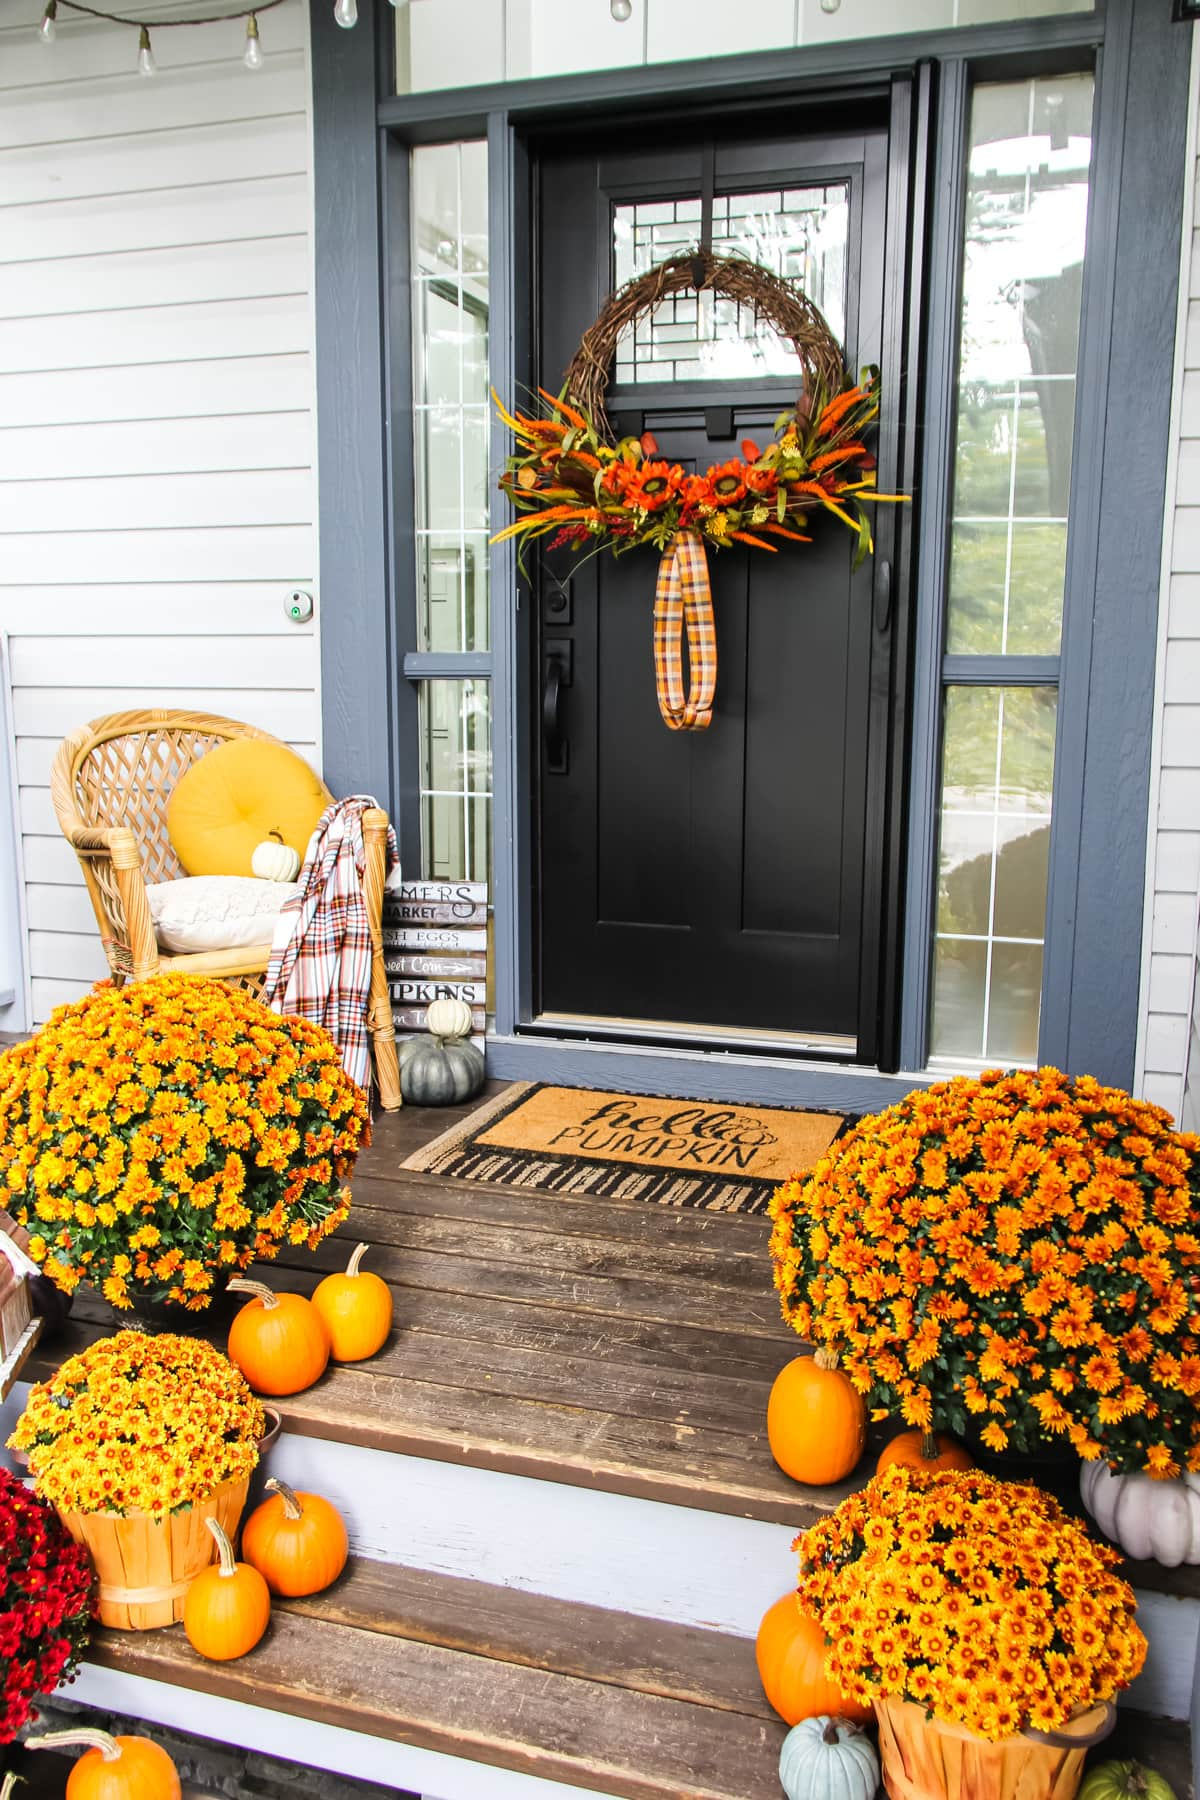 a house porch decorated with orange and red chrysanthemums, mini orange pumpkins, candles, a blue grass and a wicker chair. on the black door hangs a large grapevine wreath with fall florals.